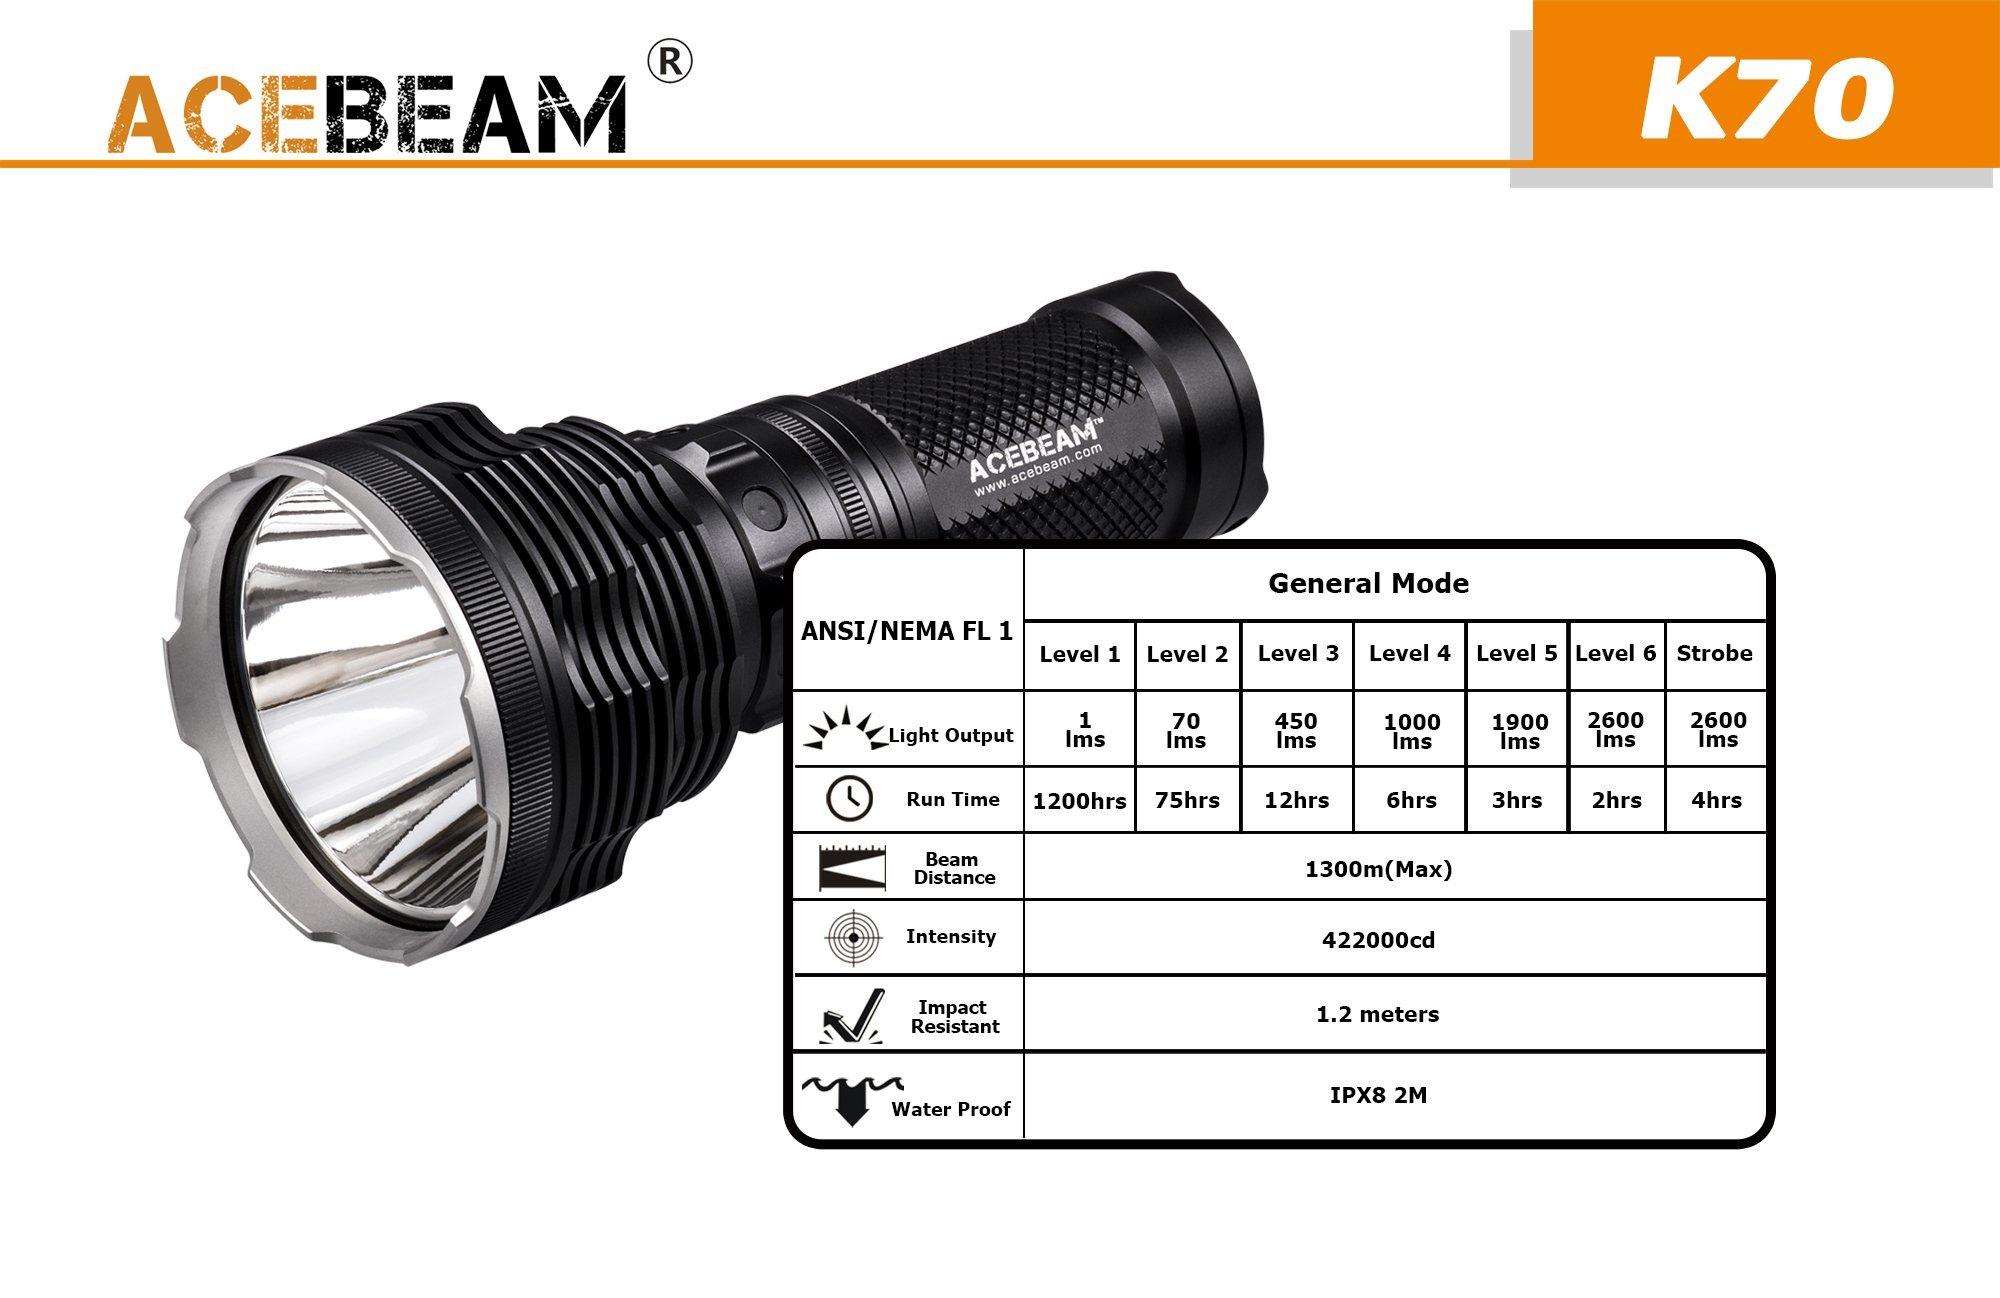 ACEBeam K70 CREE XHP35 Hi LED Flashlight Use 4x 18650 Battery 2600lumens Throw 1300meters by Acebeam (Image #3)